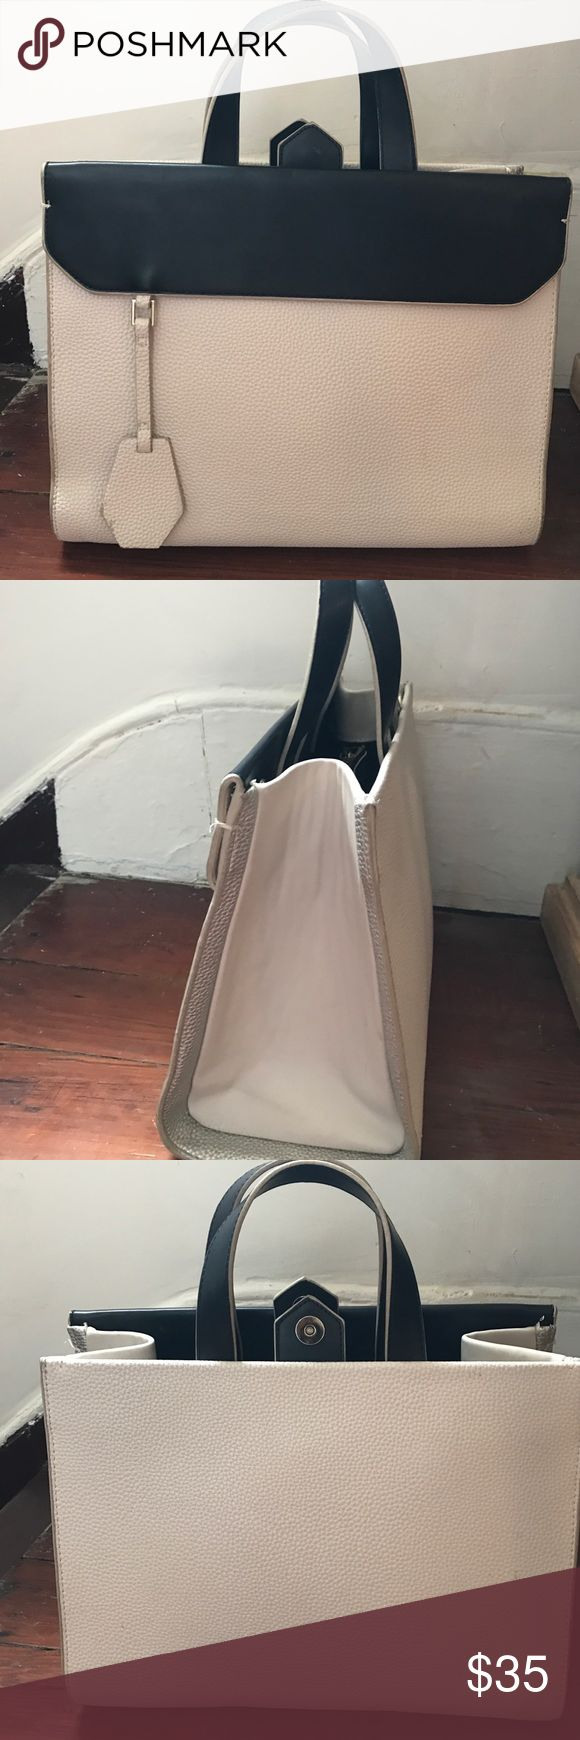 Zara black and cream structured handbag Fabulous Zara handbag in great condition. Comes with long strap as well. Very structured bag that doesn't loose its shape. Worn only a few times. Looks very similar to a Fendi style bag. Zara Bags Satchels